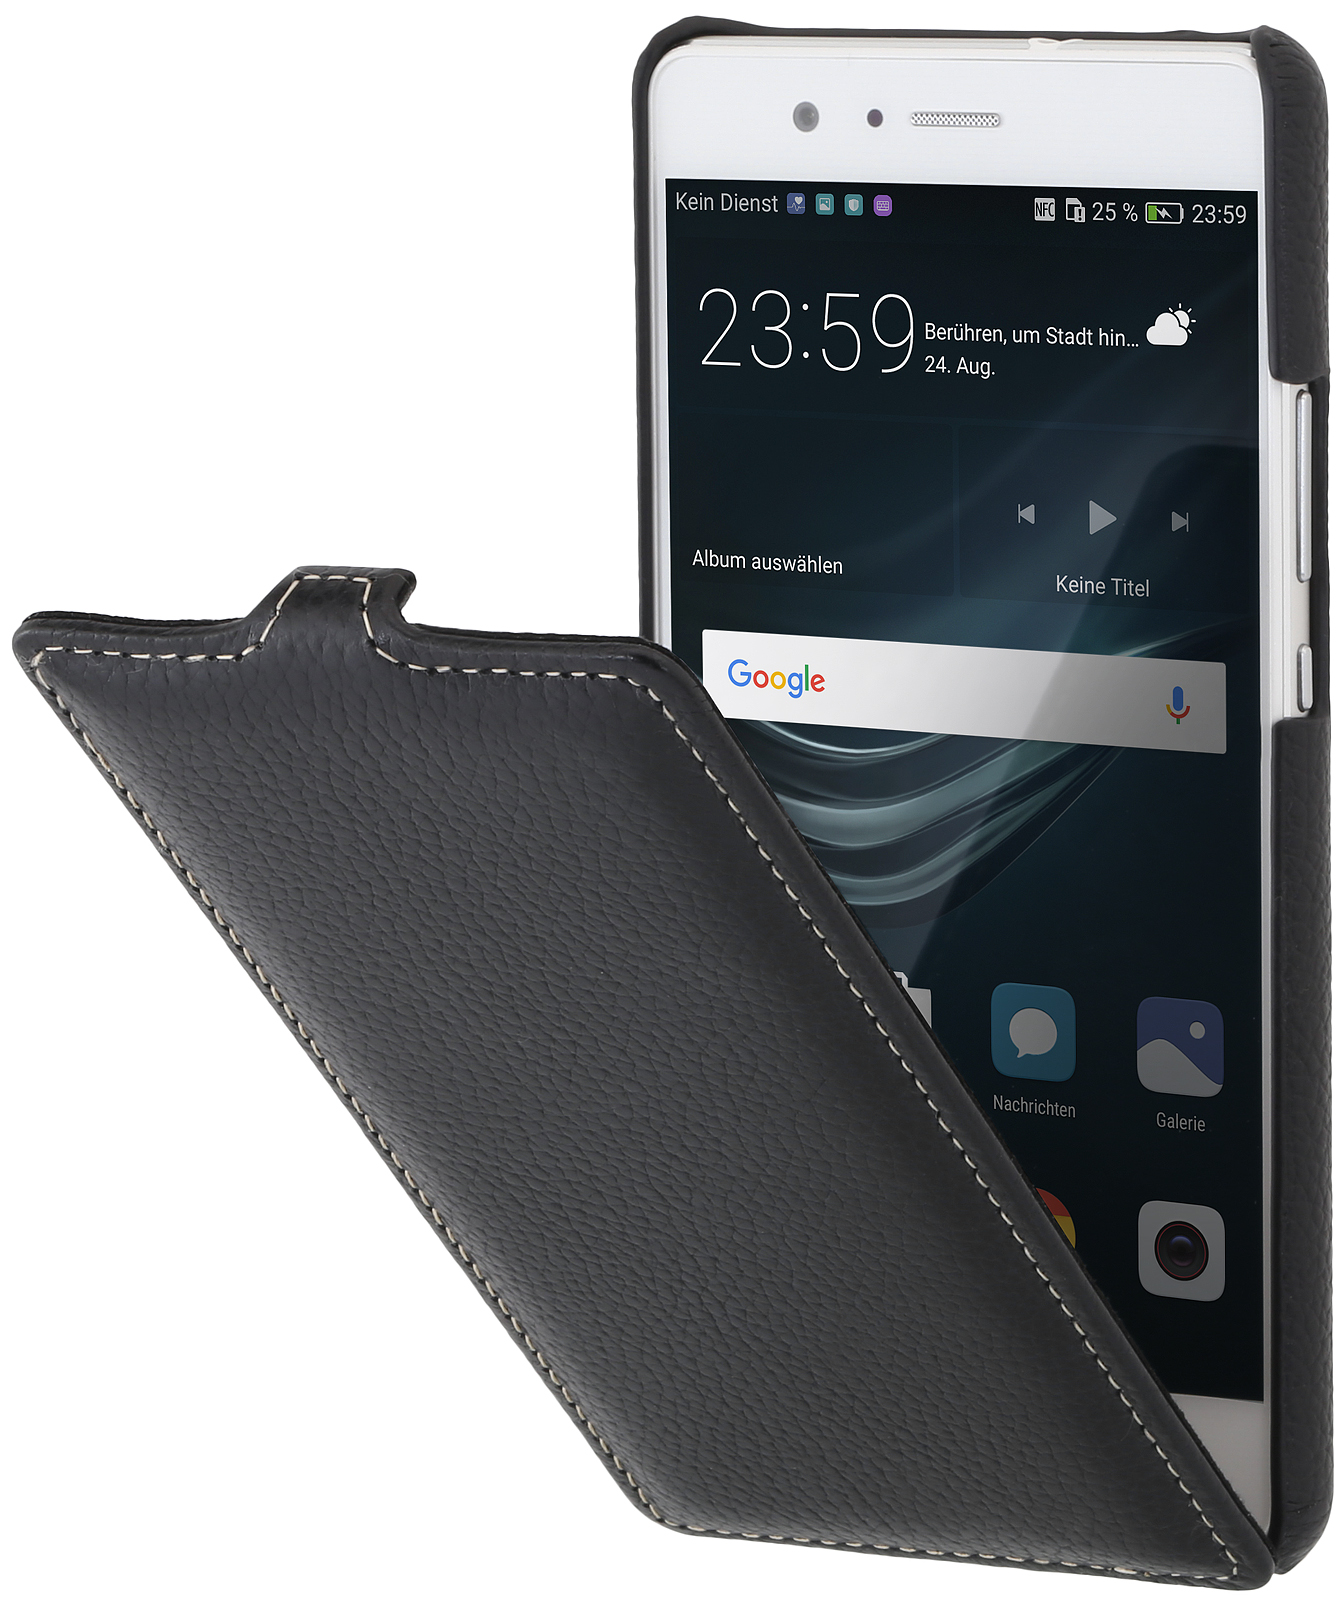 Housse huawei p9 lite ultraslim en cuir de stilgut for Housse huawei p9 lite